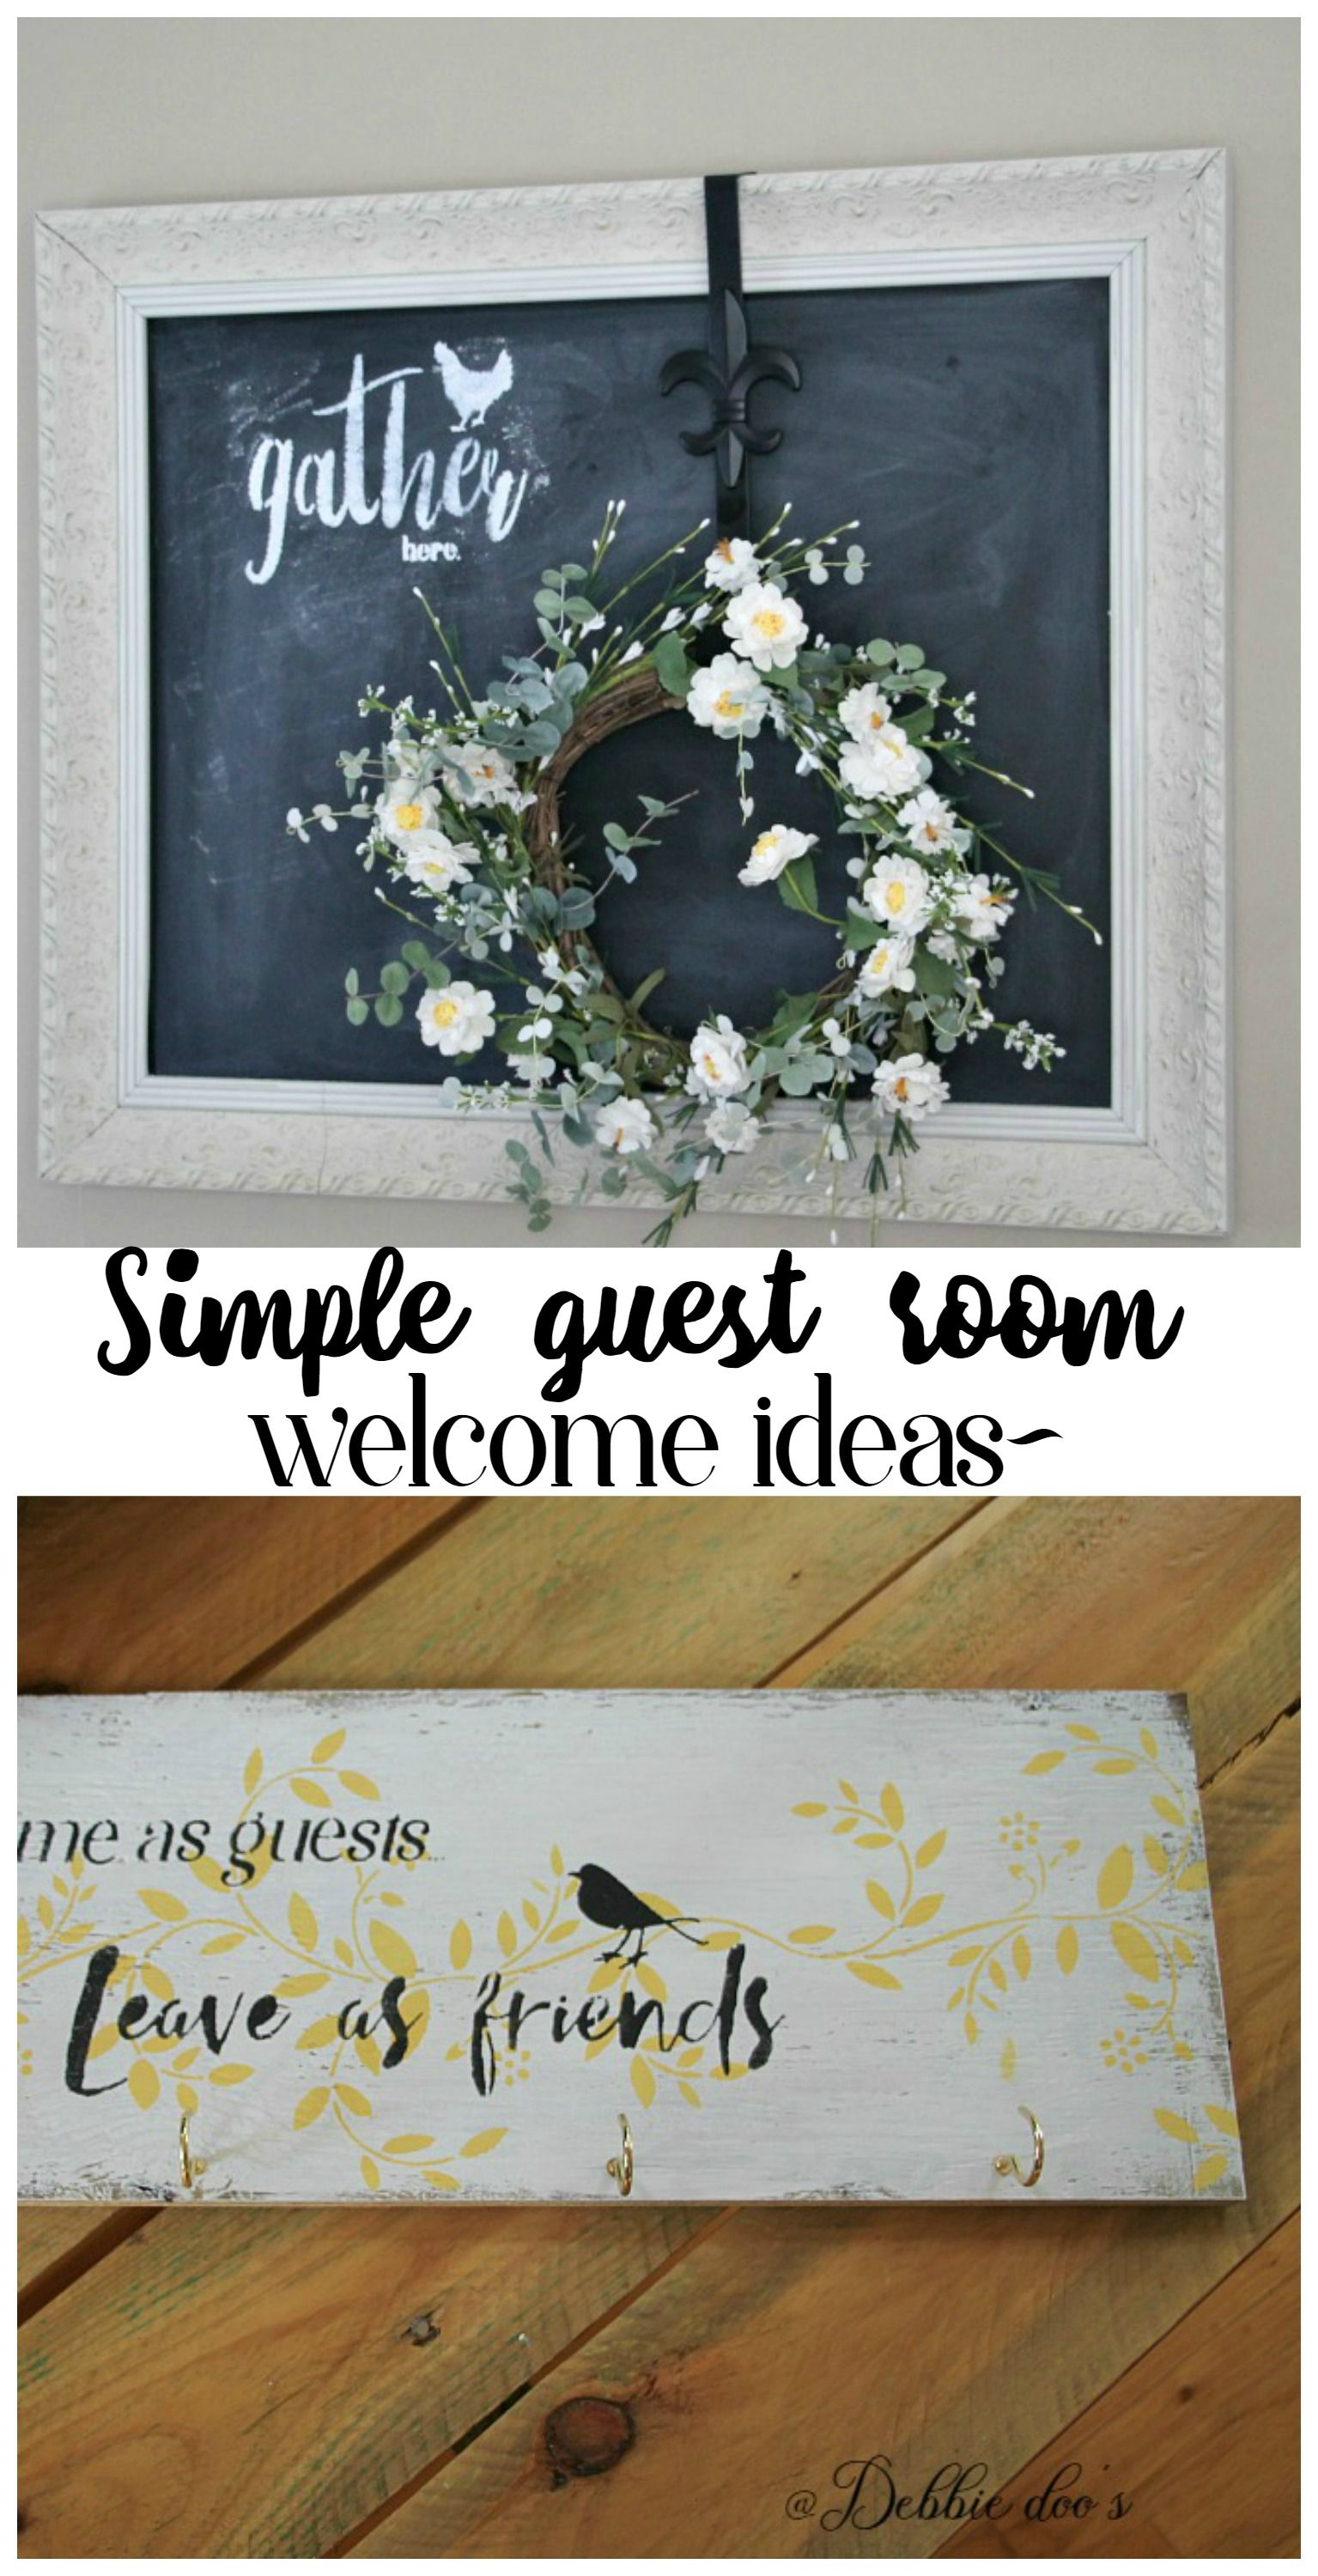 Simple guest room welcome ideas